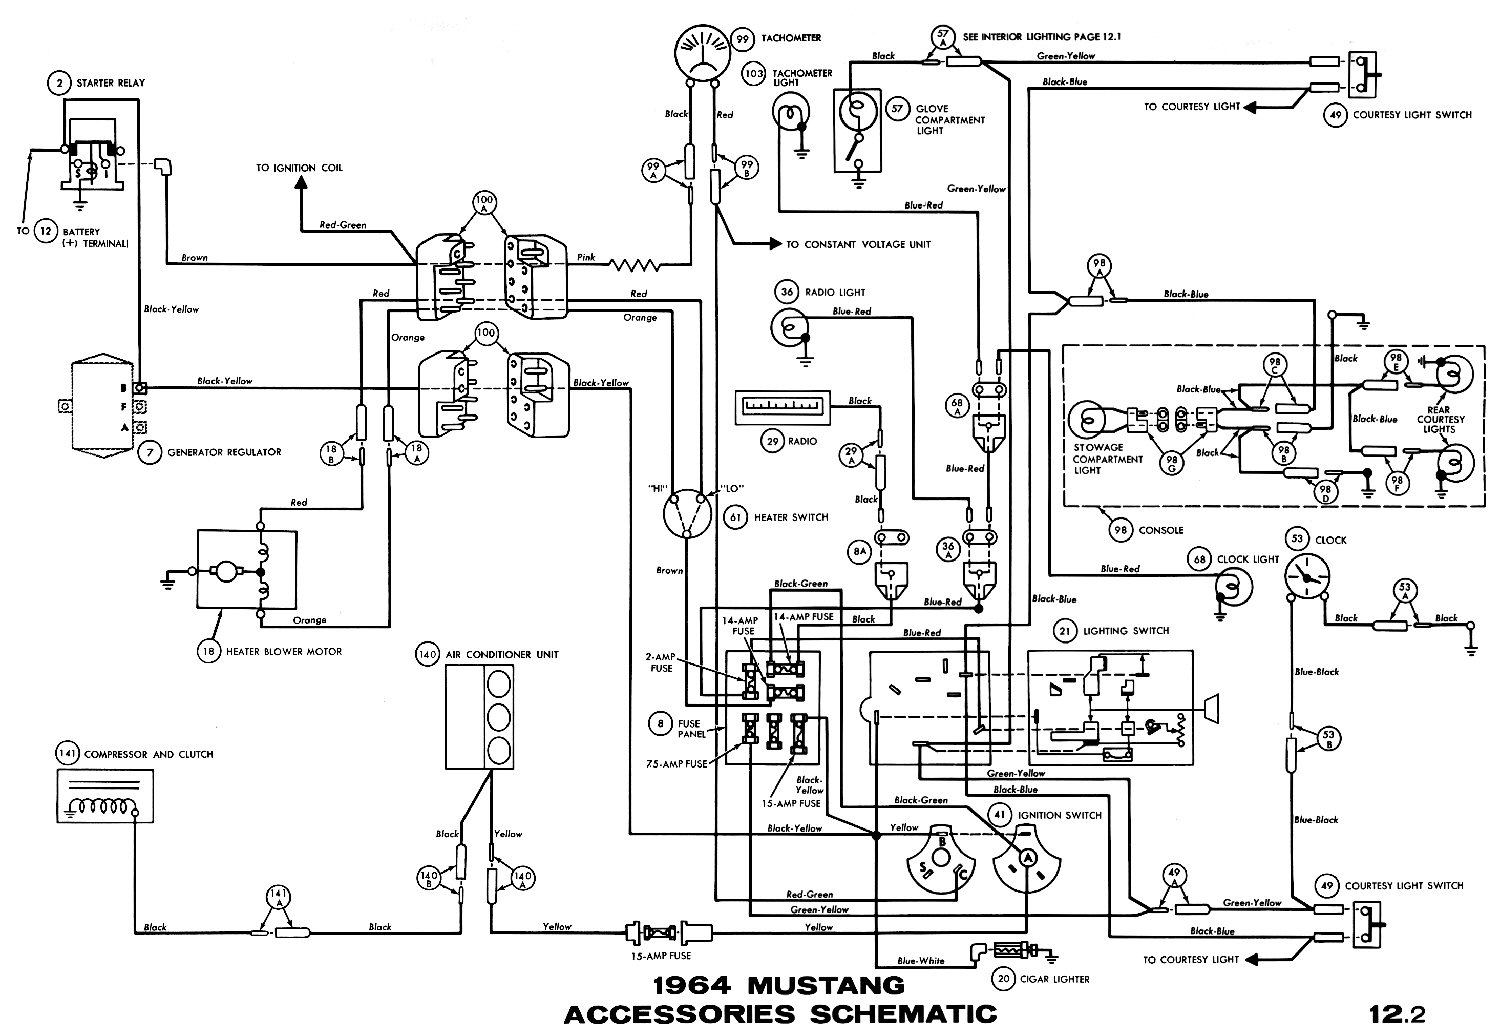 1964m 2015 mustang wiring diagram schematic mustang 2015 \u2022 free wiring 1965 ford mustang wiring diagrams at gsmportal.co